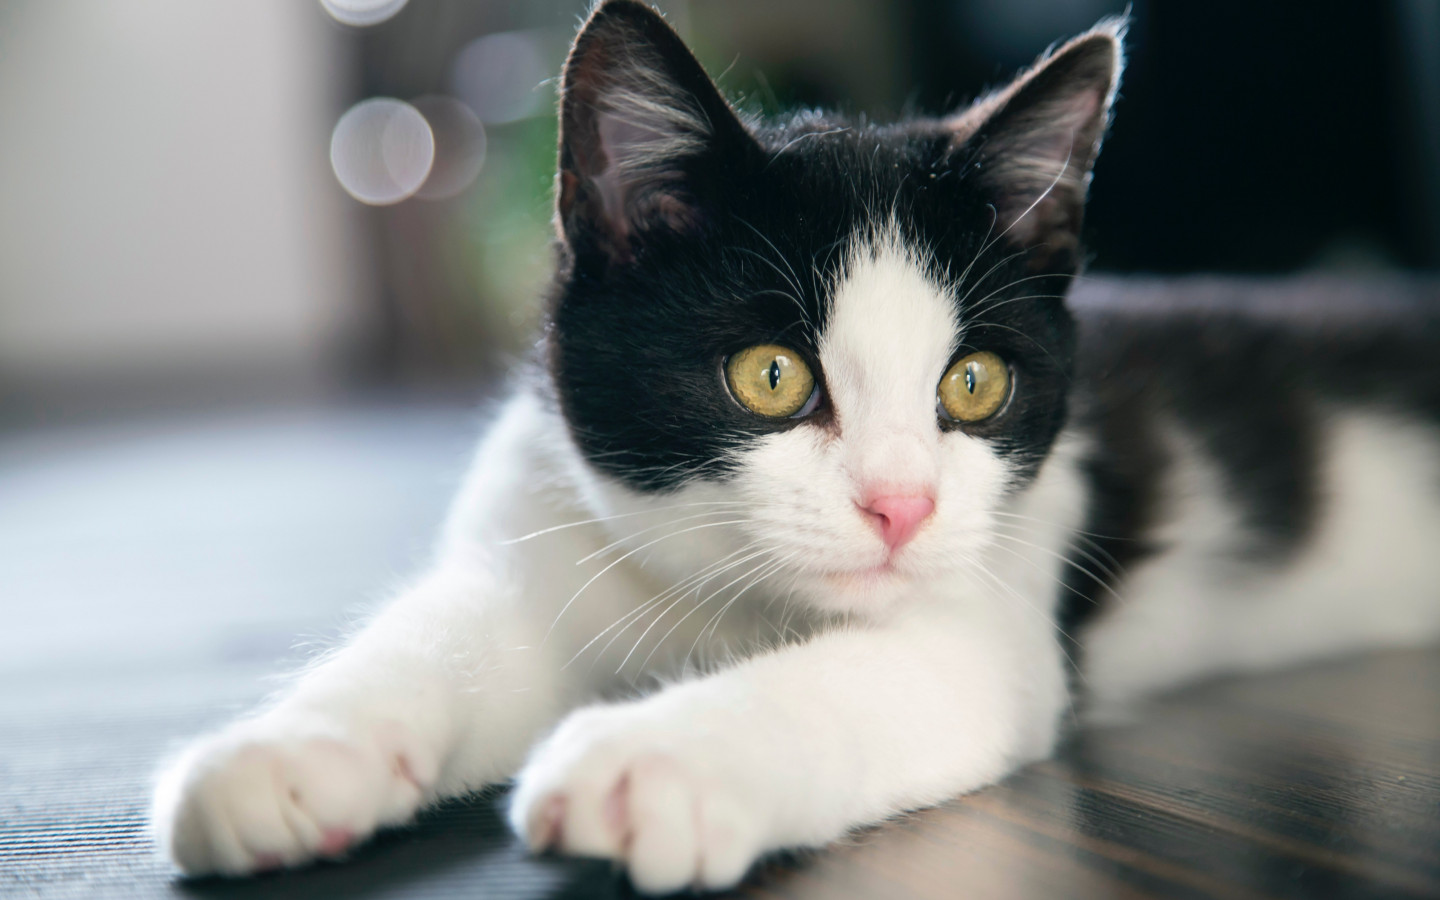 Black and white cat wallpaper 1440x900